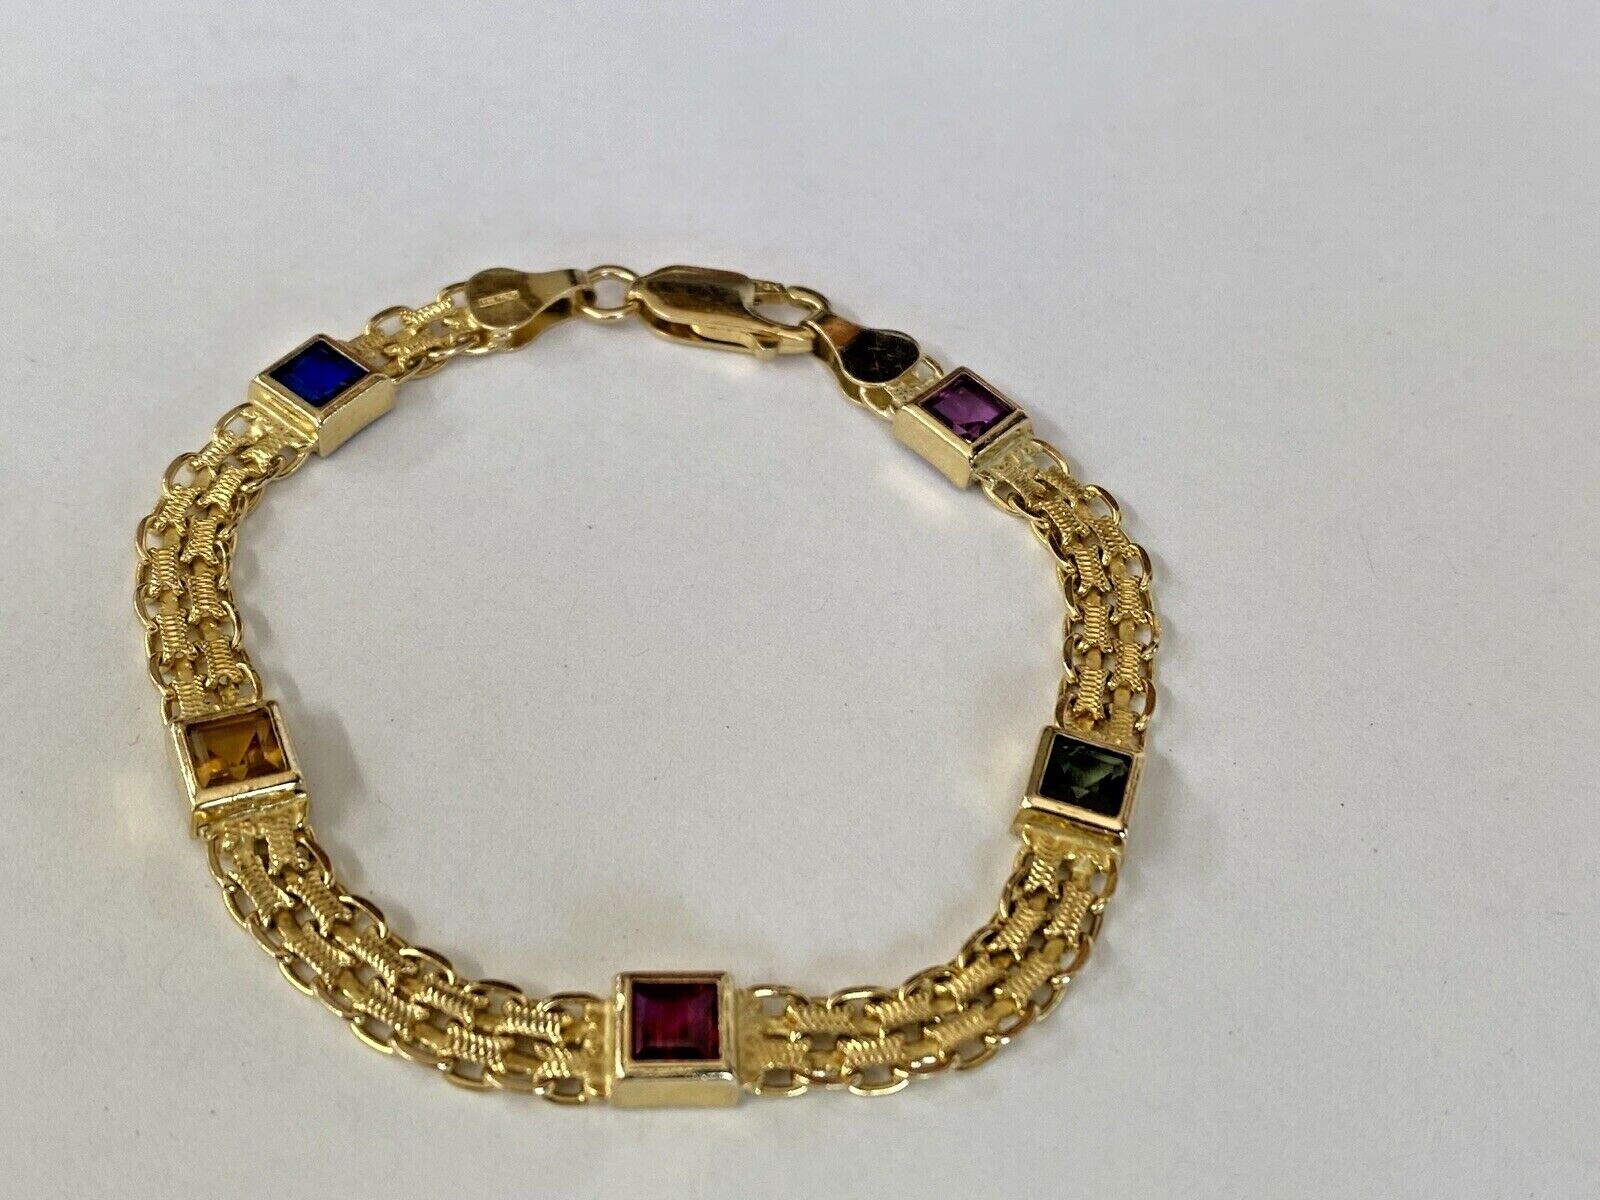 14k Yellow Gold w/ Colored Stones Women's Bracelet 6.3mm  7 1/4 Inches PRETTY!!! 1